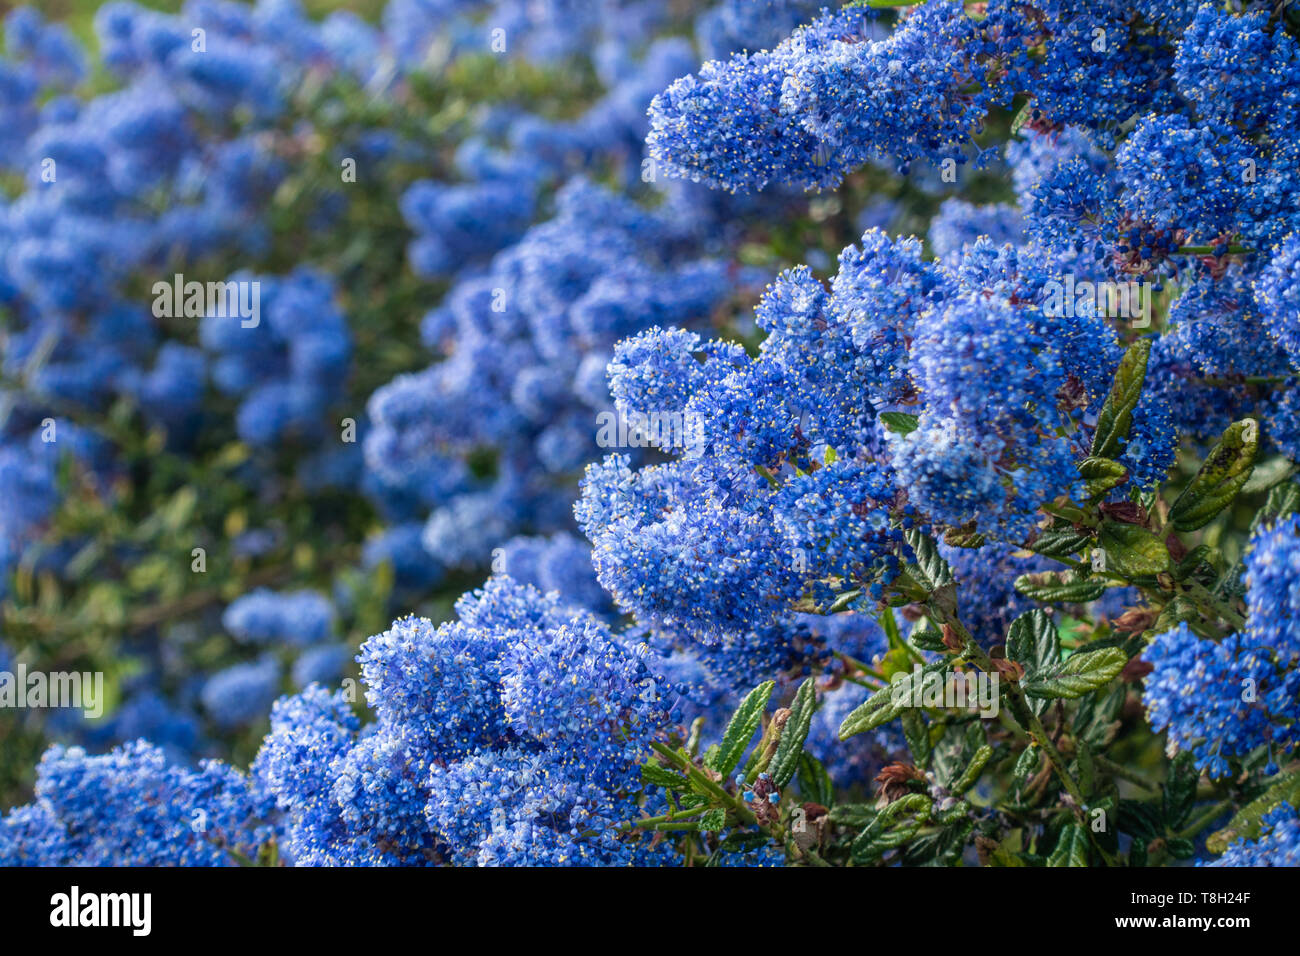 close-up-view-of-blue-ceanothus-flowers-T8H24F.jpg